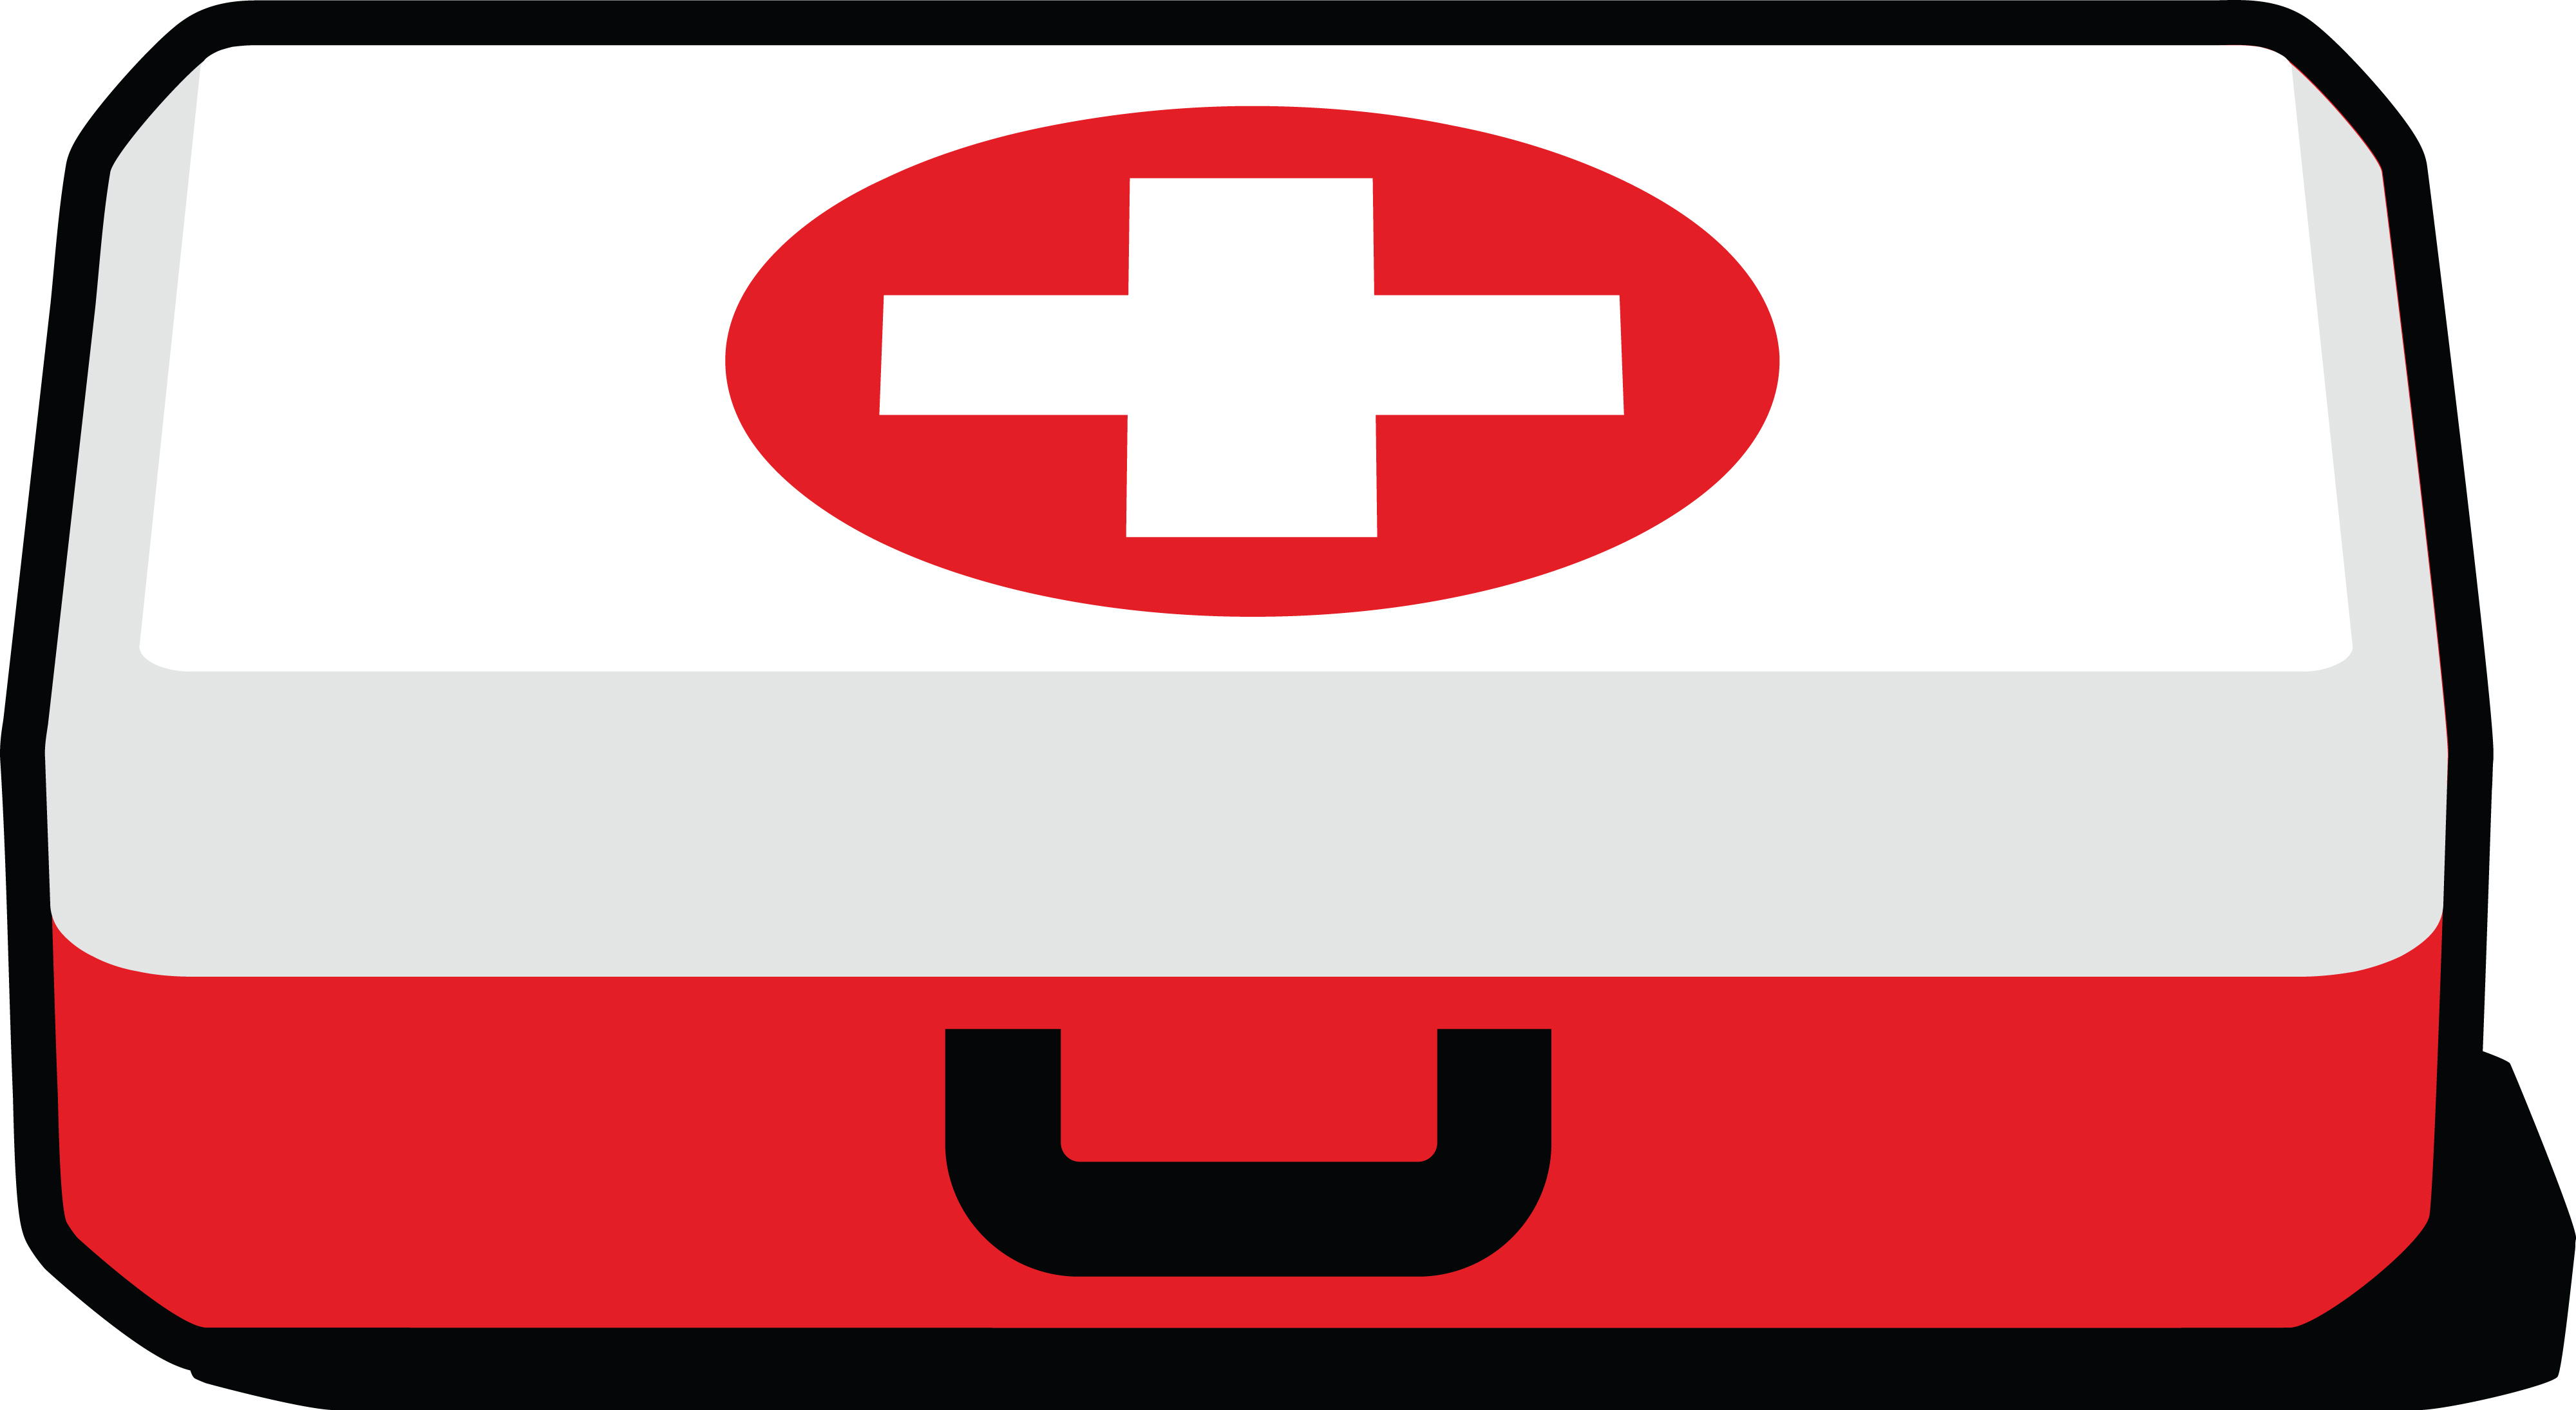 Free Clipart of a First Aid Kit.